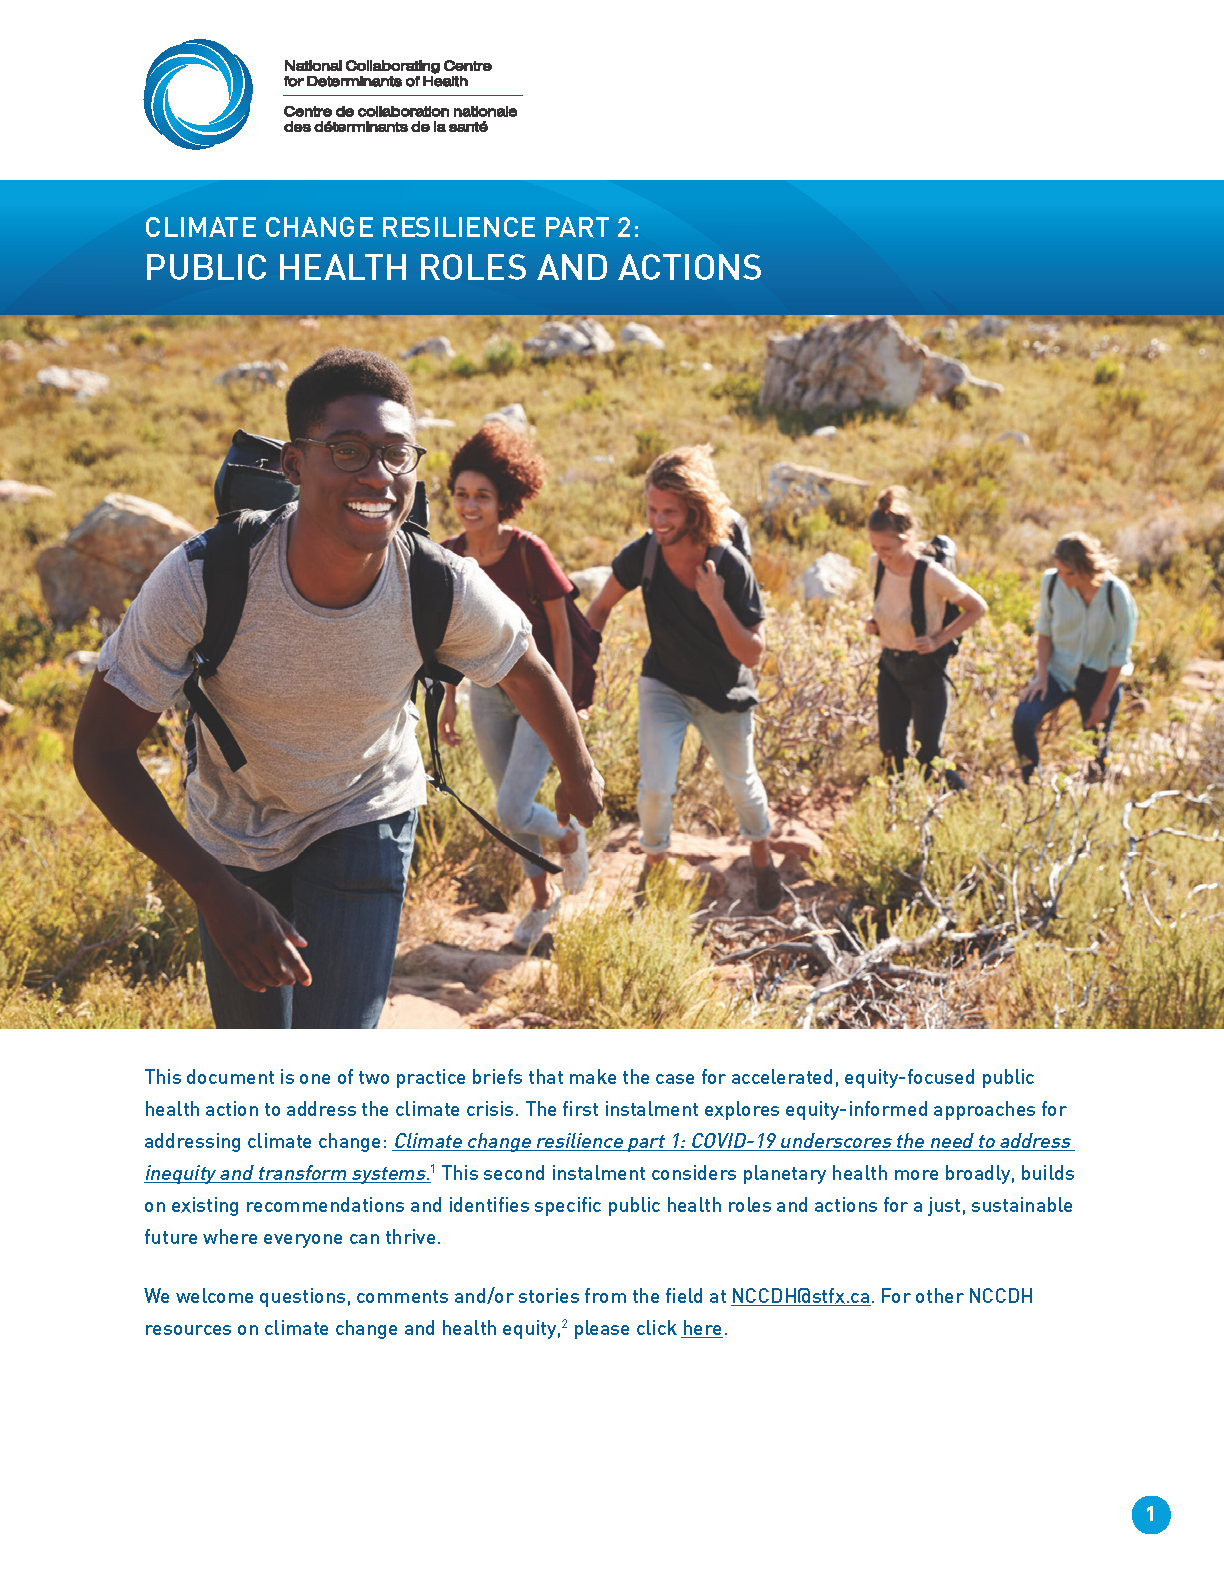 Climate change resilience part 2: Public health roles and actions